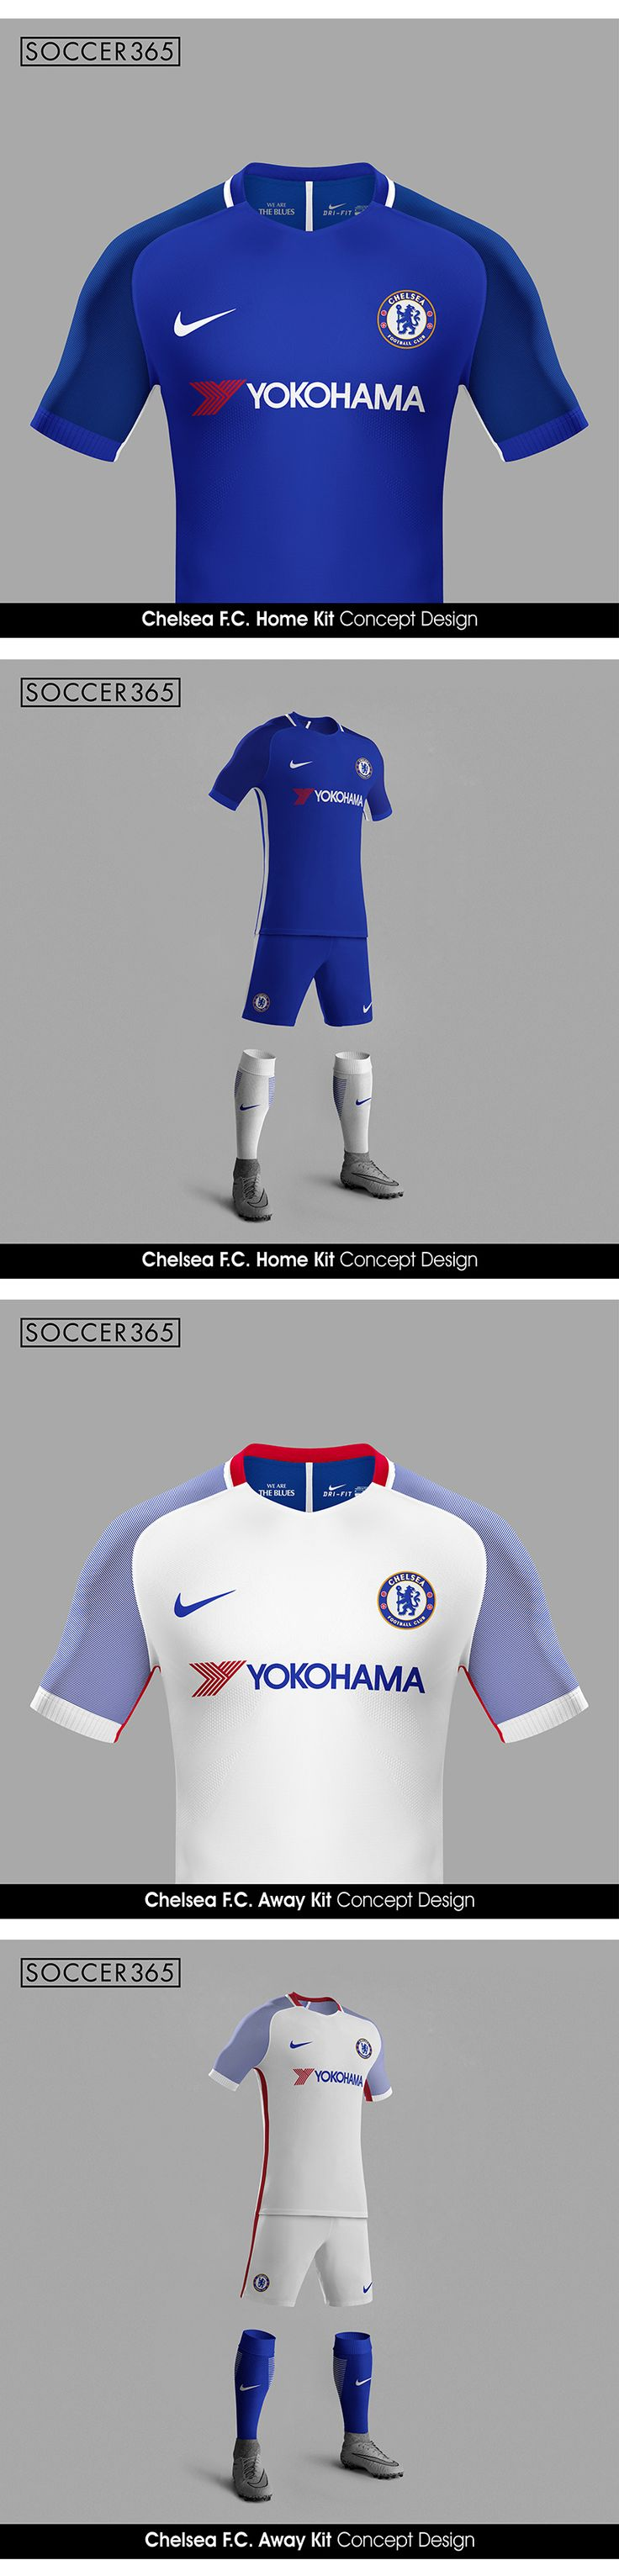 CONCEPT - What will the new Chelsea jerseys look like? Read more and comment at http://www.soccer365.com/concept-this-is-how-chelsea-nike-jerseys-could-look-like/